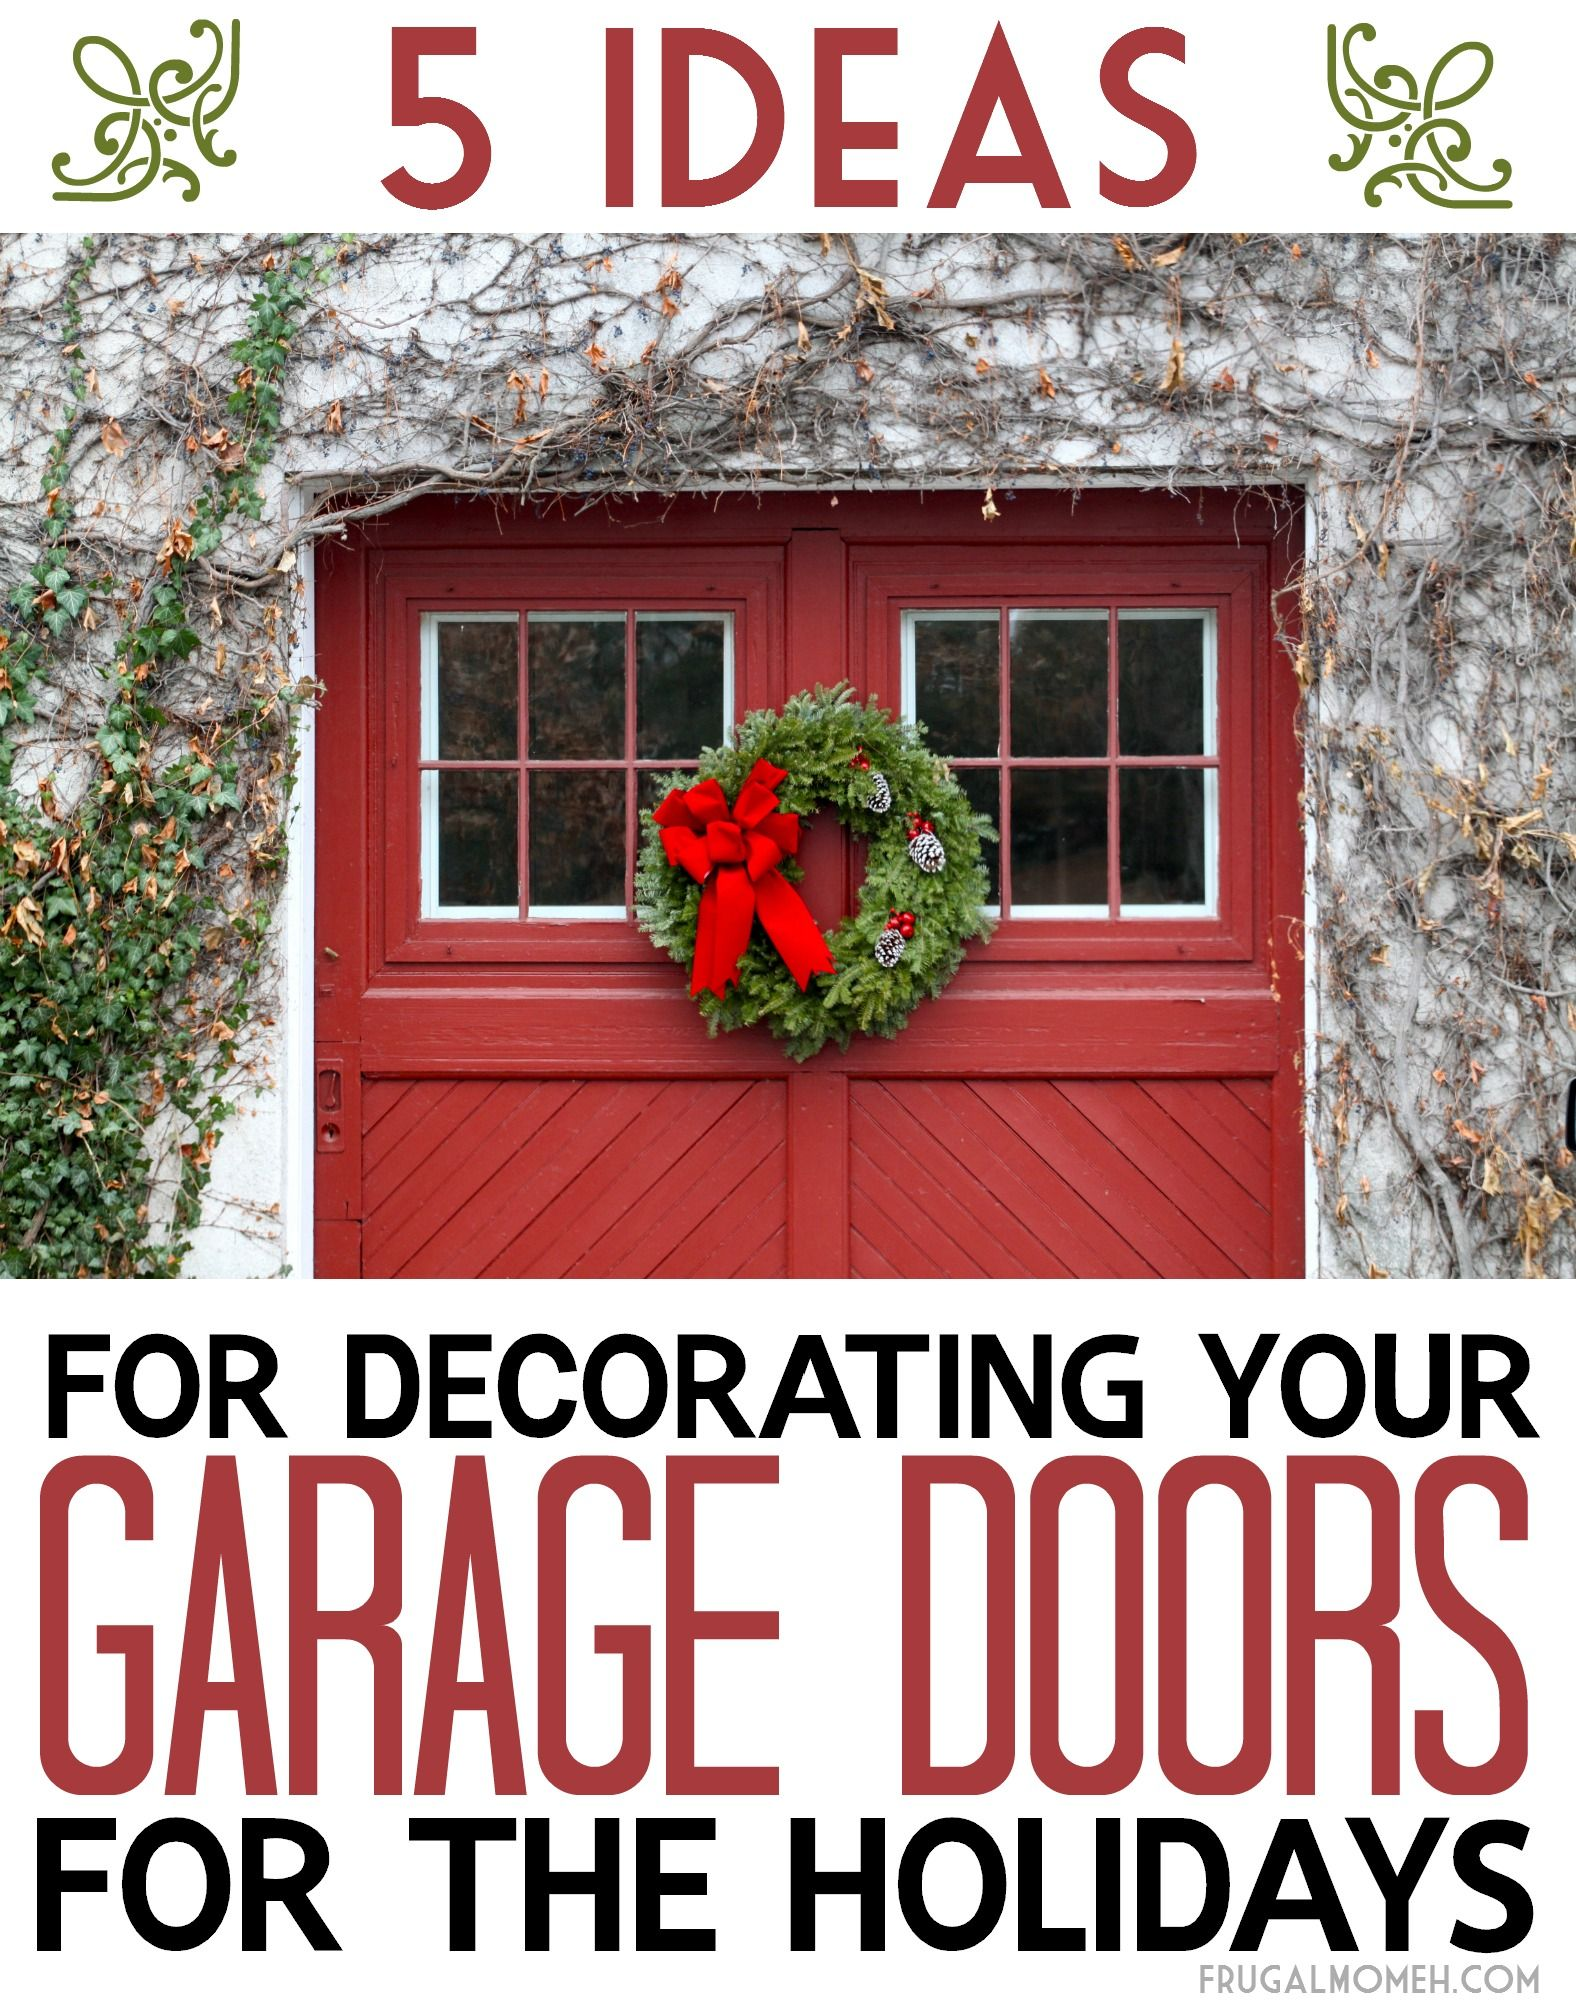 Outdoor garage decorations   Ideas for Decorating your Garage Doors for the Holidays